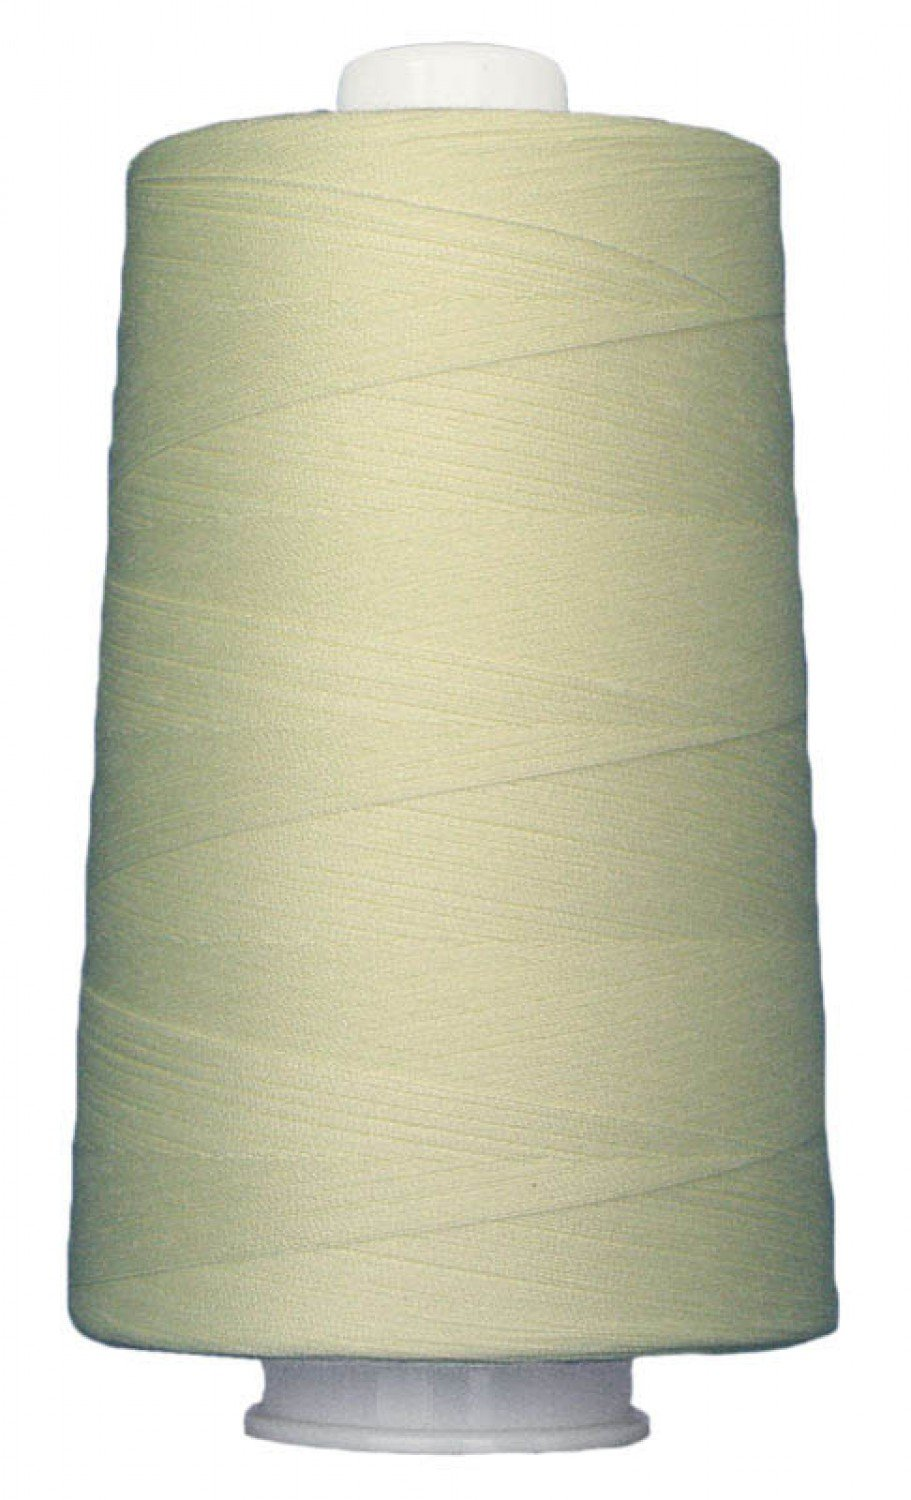 OMNI Polyester Thread 40 wt 6000 yds 3047 Light Lemon by Superior